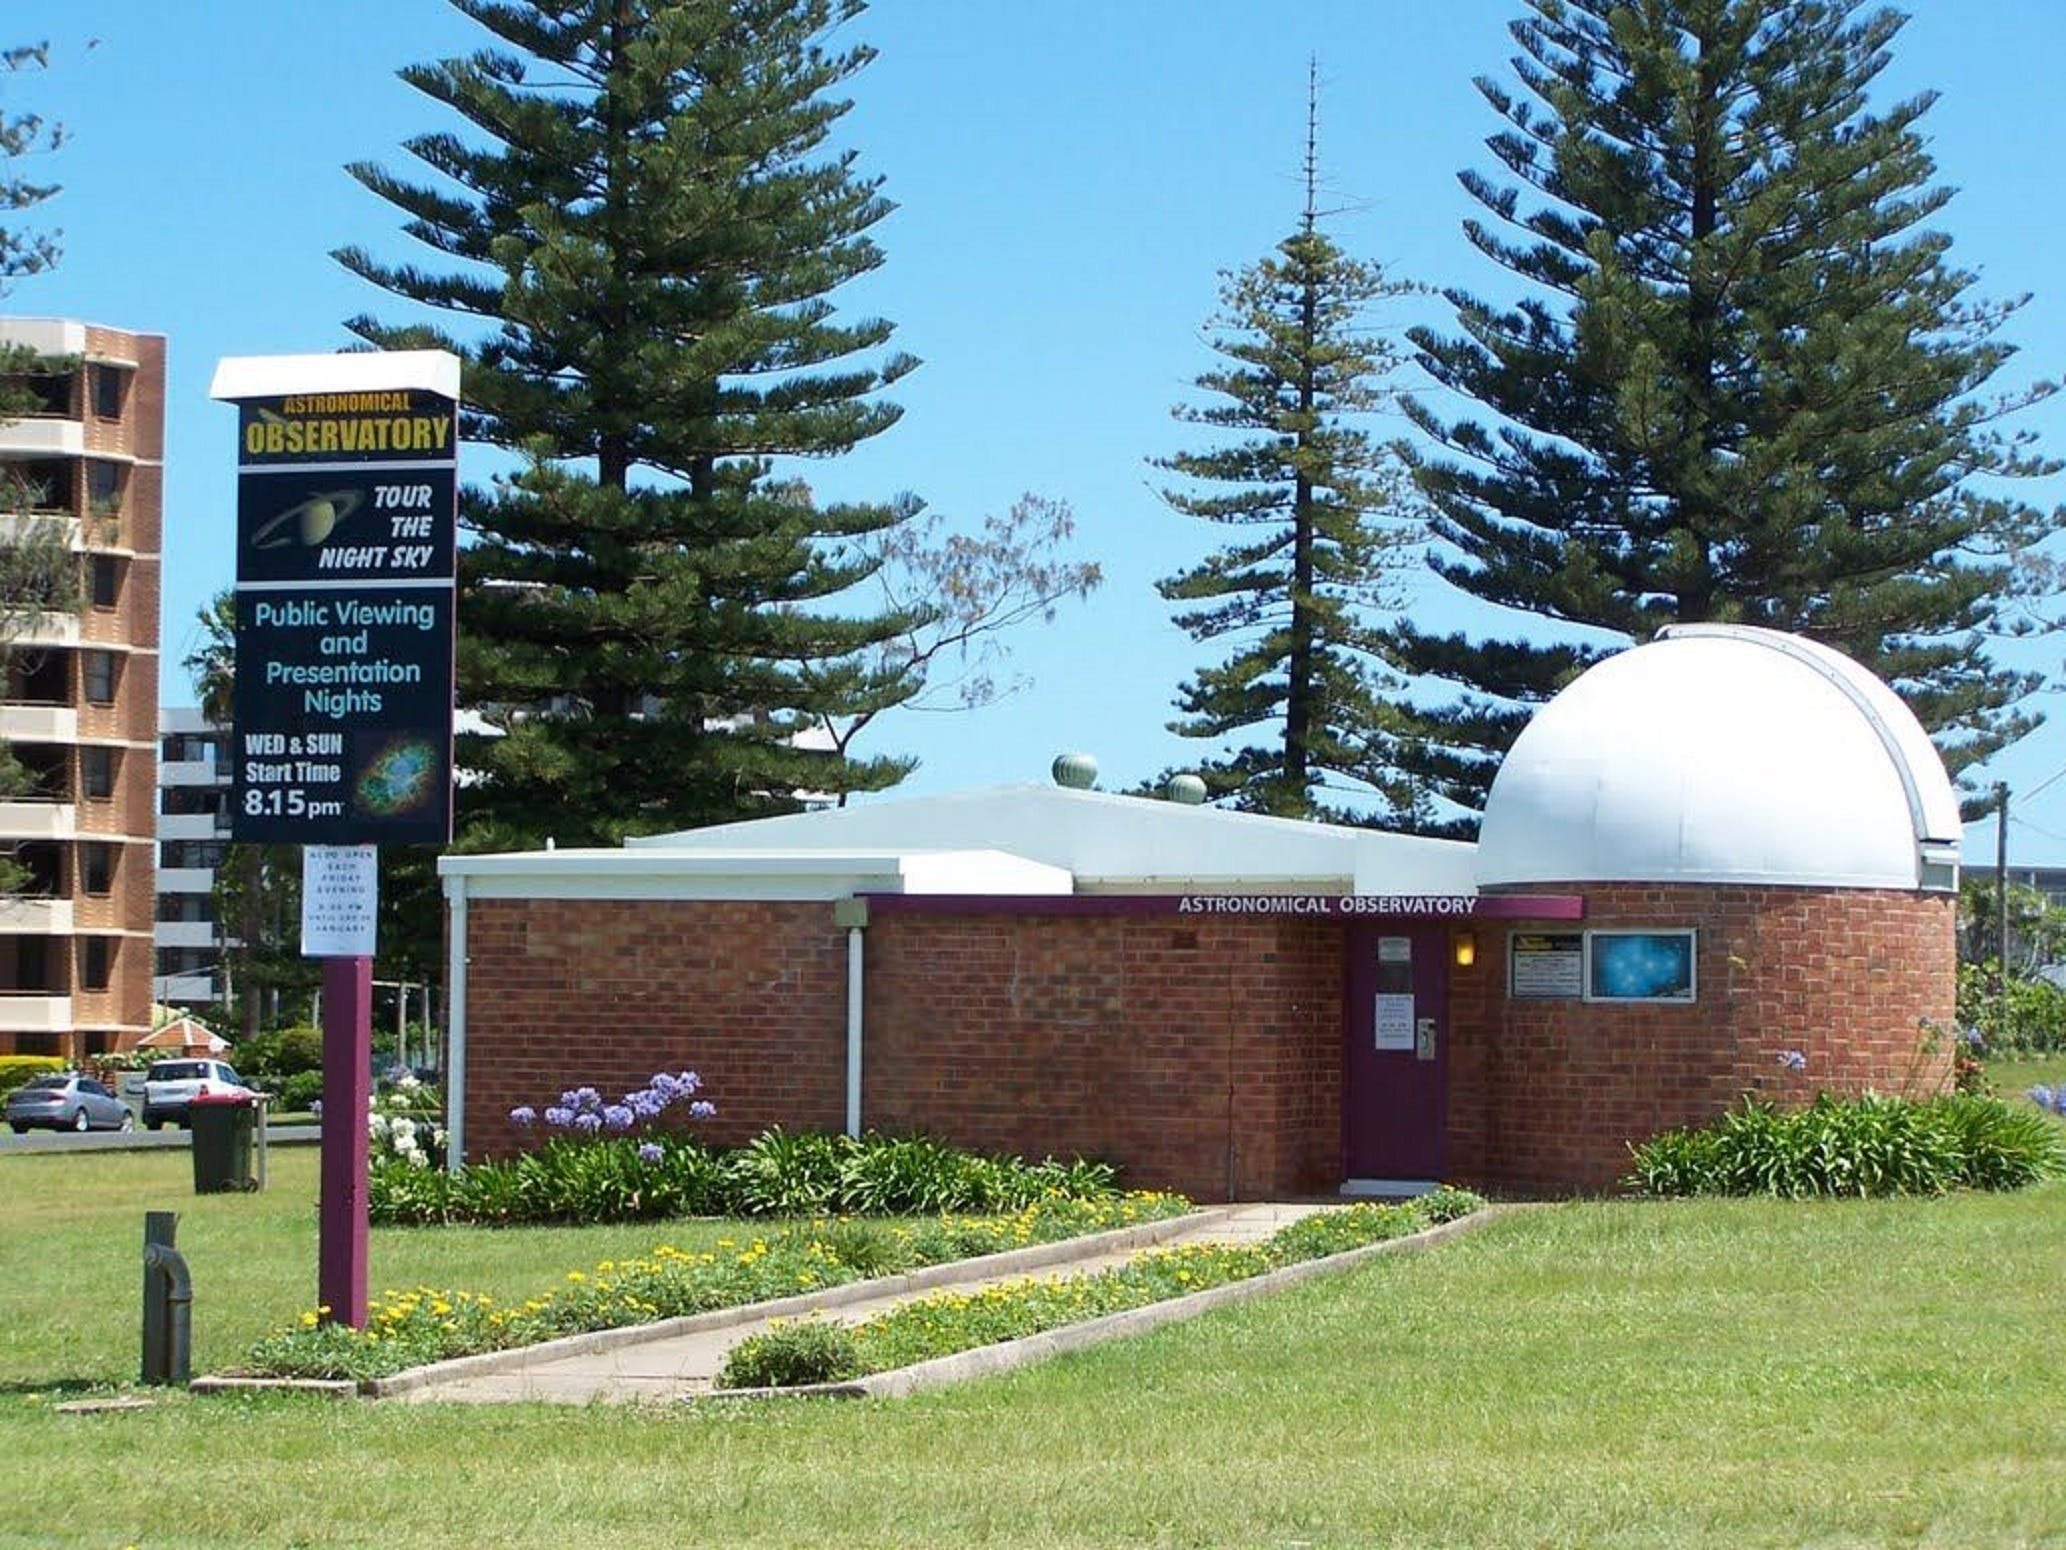 Port Macquarie Astronomical Observatory - Accommodation Fremantle